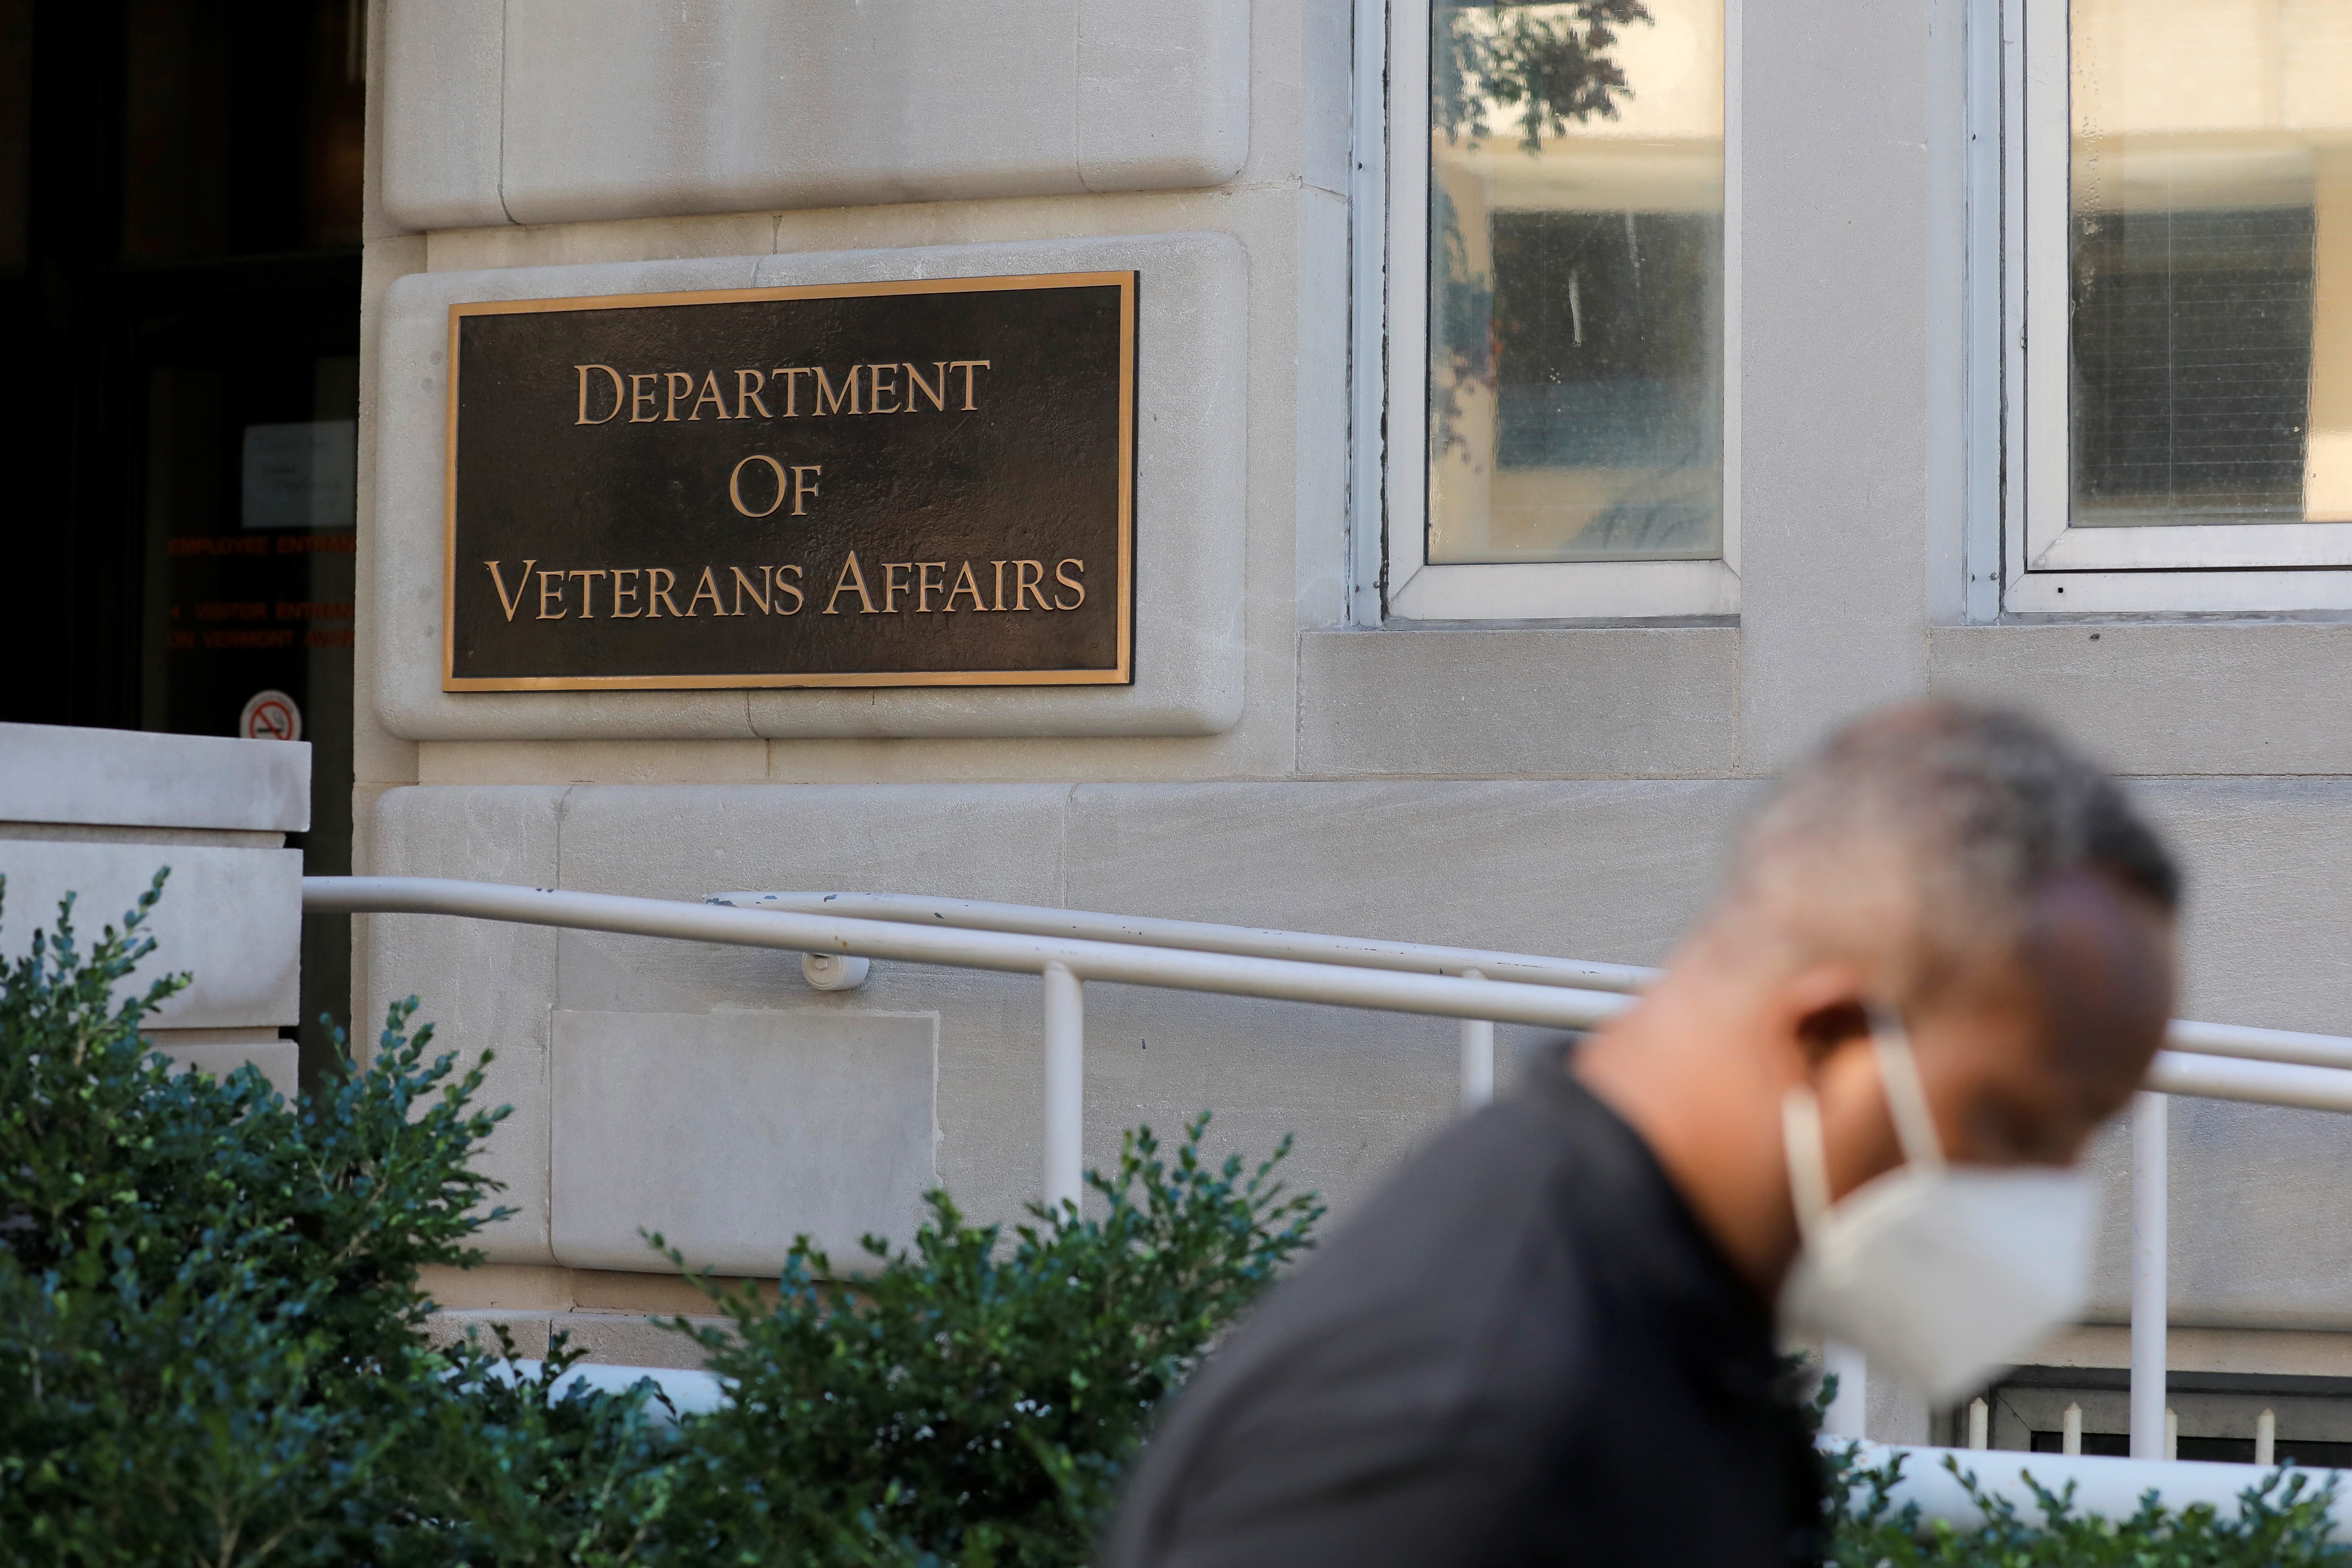 Signage is seen outside of the United States Department of Veterans Affairs in Washington, D.C., U.S., August 30, 2020. REUTERS/Andrew Kelly/File Photo